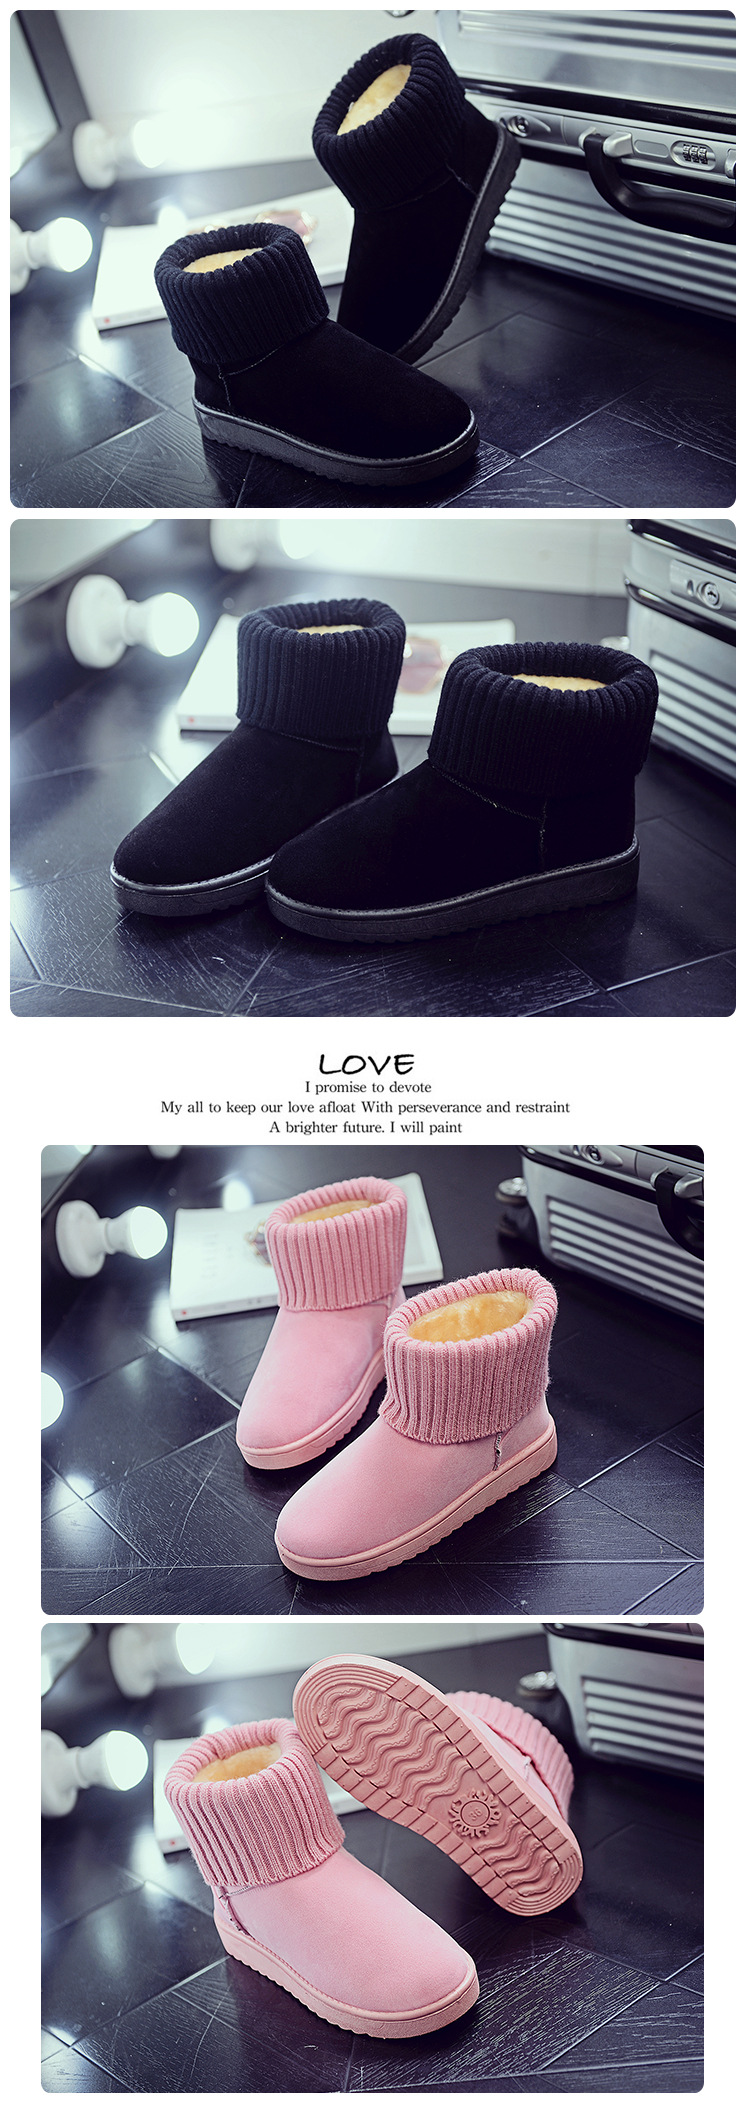 Women's new snow boots winter fashion wild classic women's shoes simple warm non-slip waterproof wool shoes ladies ankle boots 67